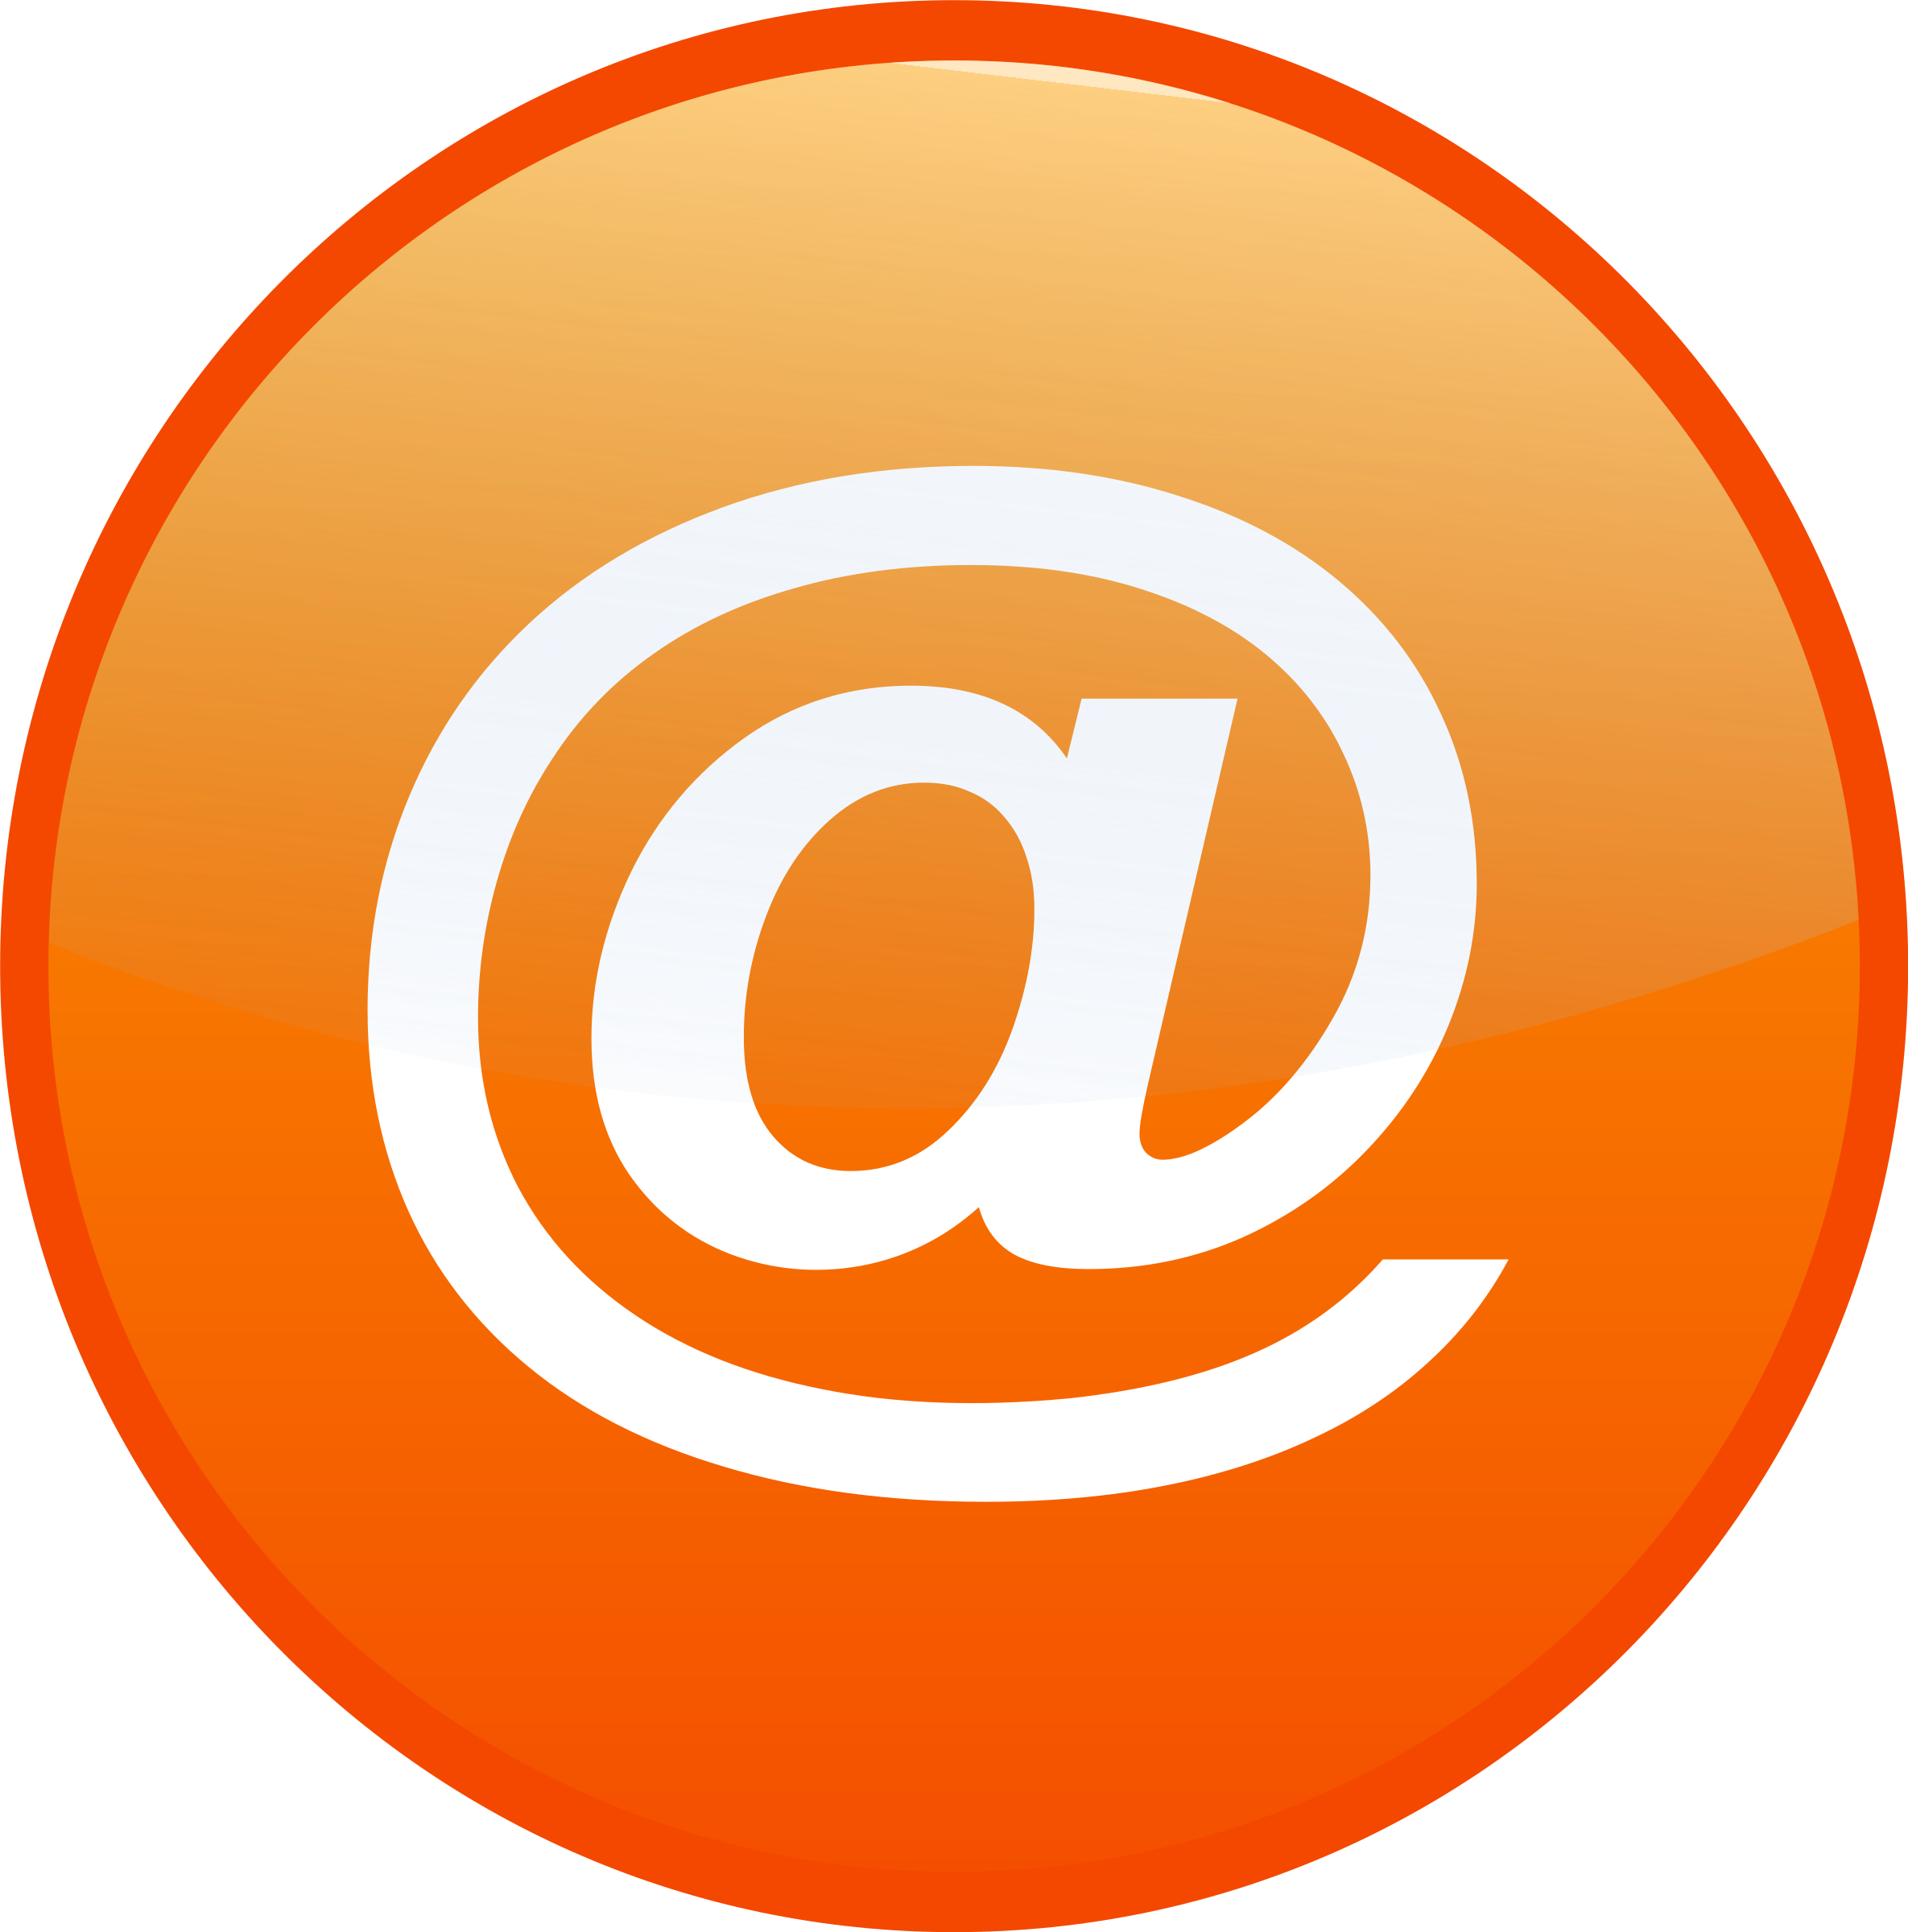 Telephone clipart email. Png images free download